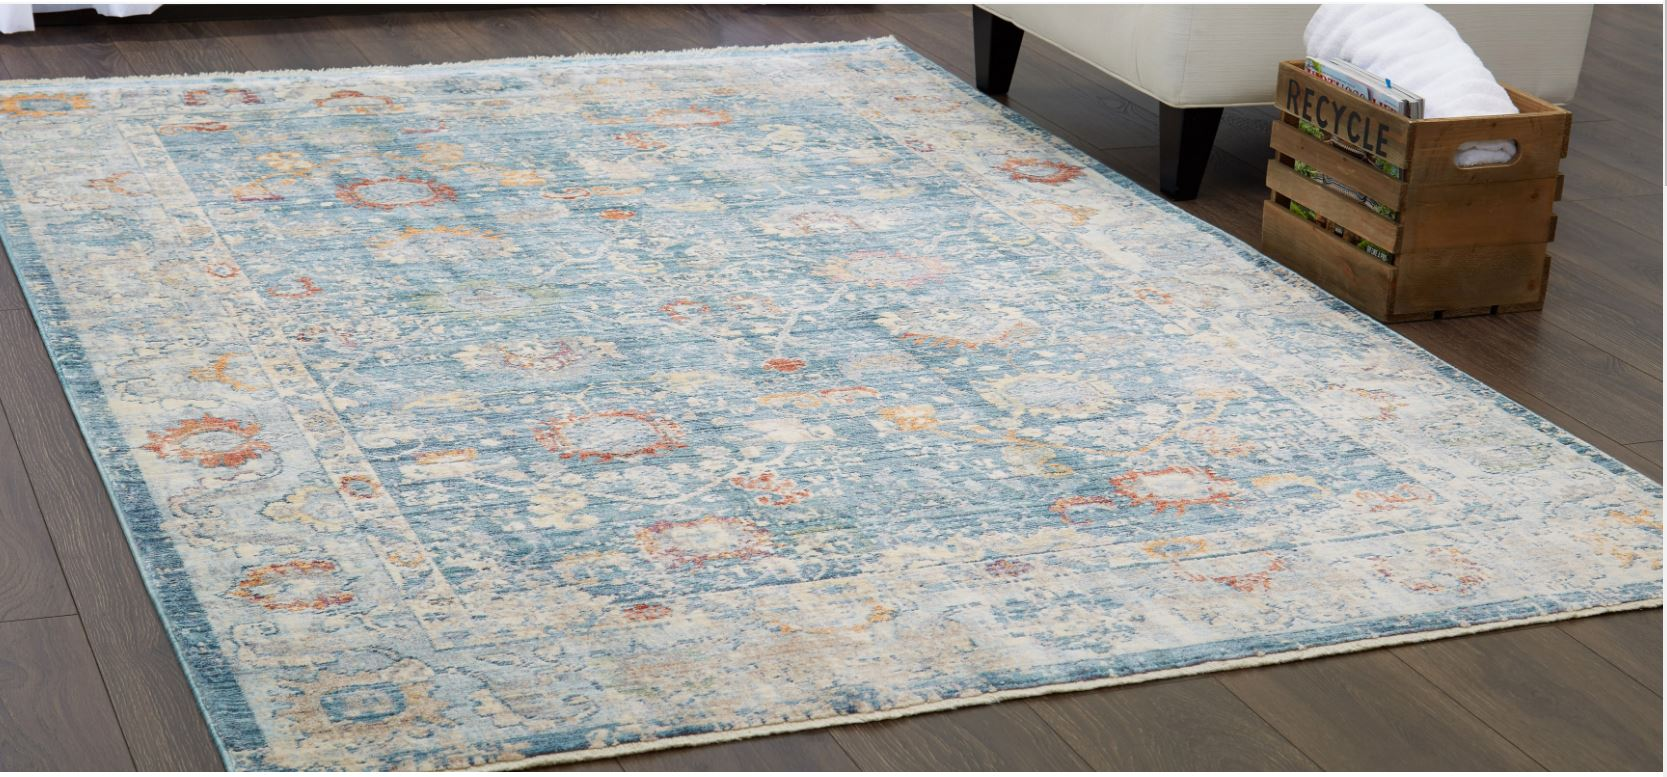 Ruginternational Nicole Miller Area Rugs By Artisian